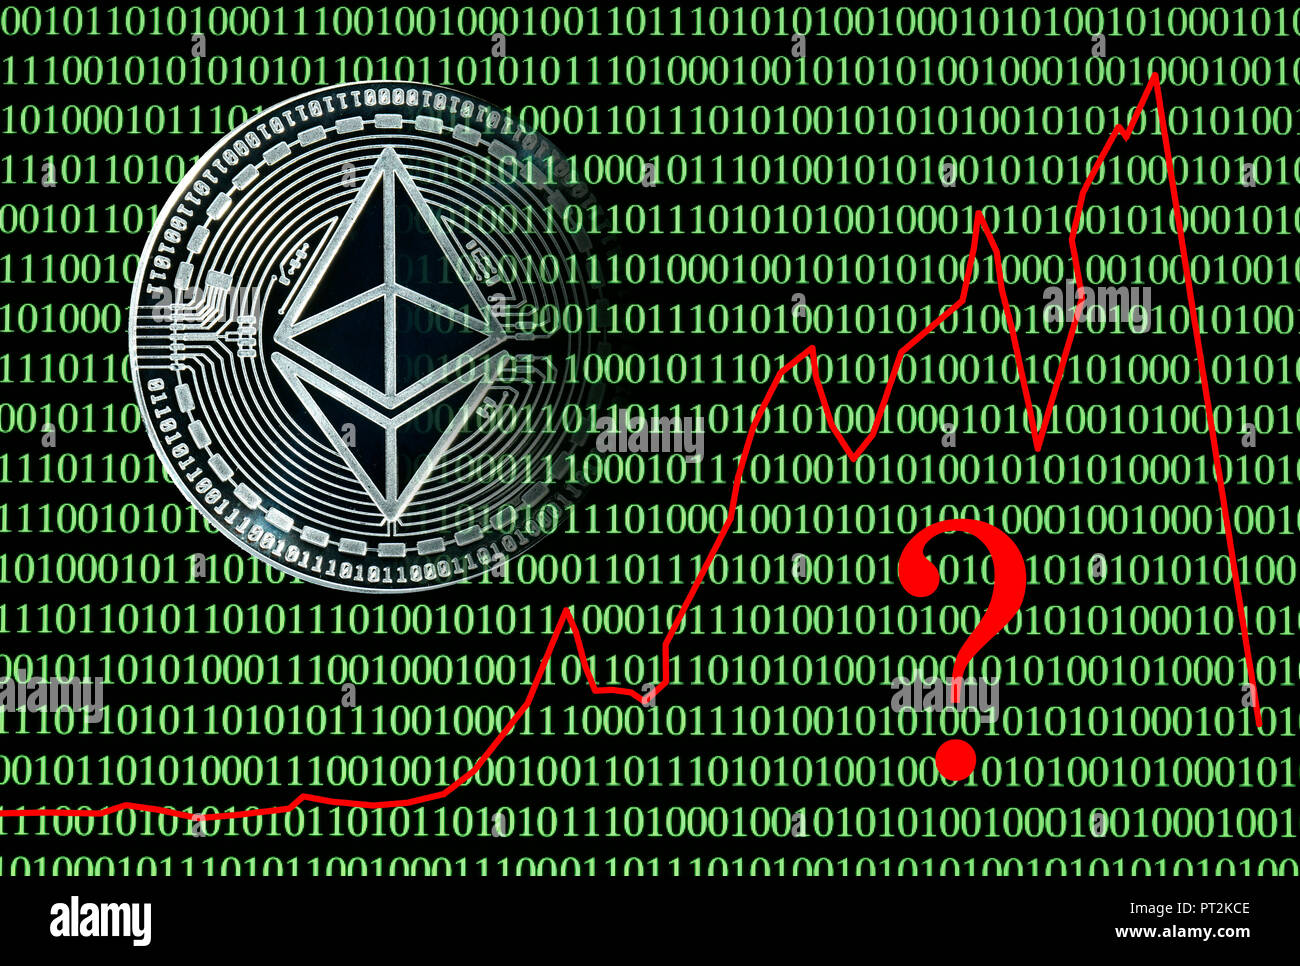 Symbolic image stock price digital currency, silver physical coin Ethereum in front of digital binary code - Stock Image